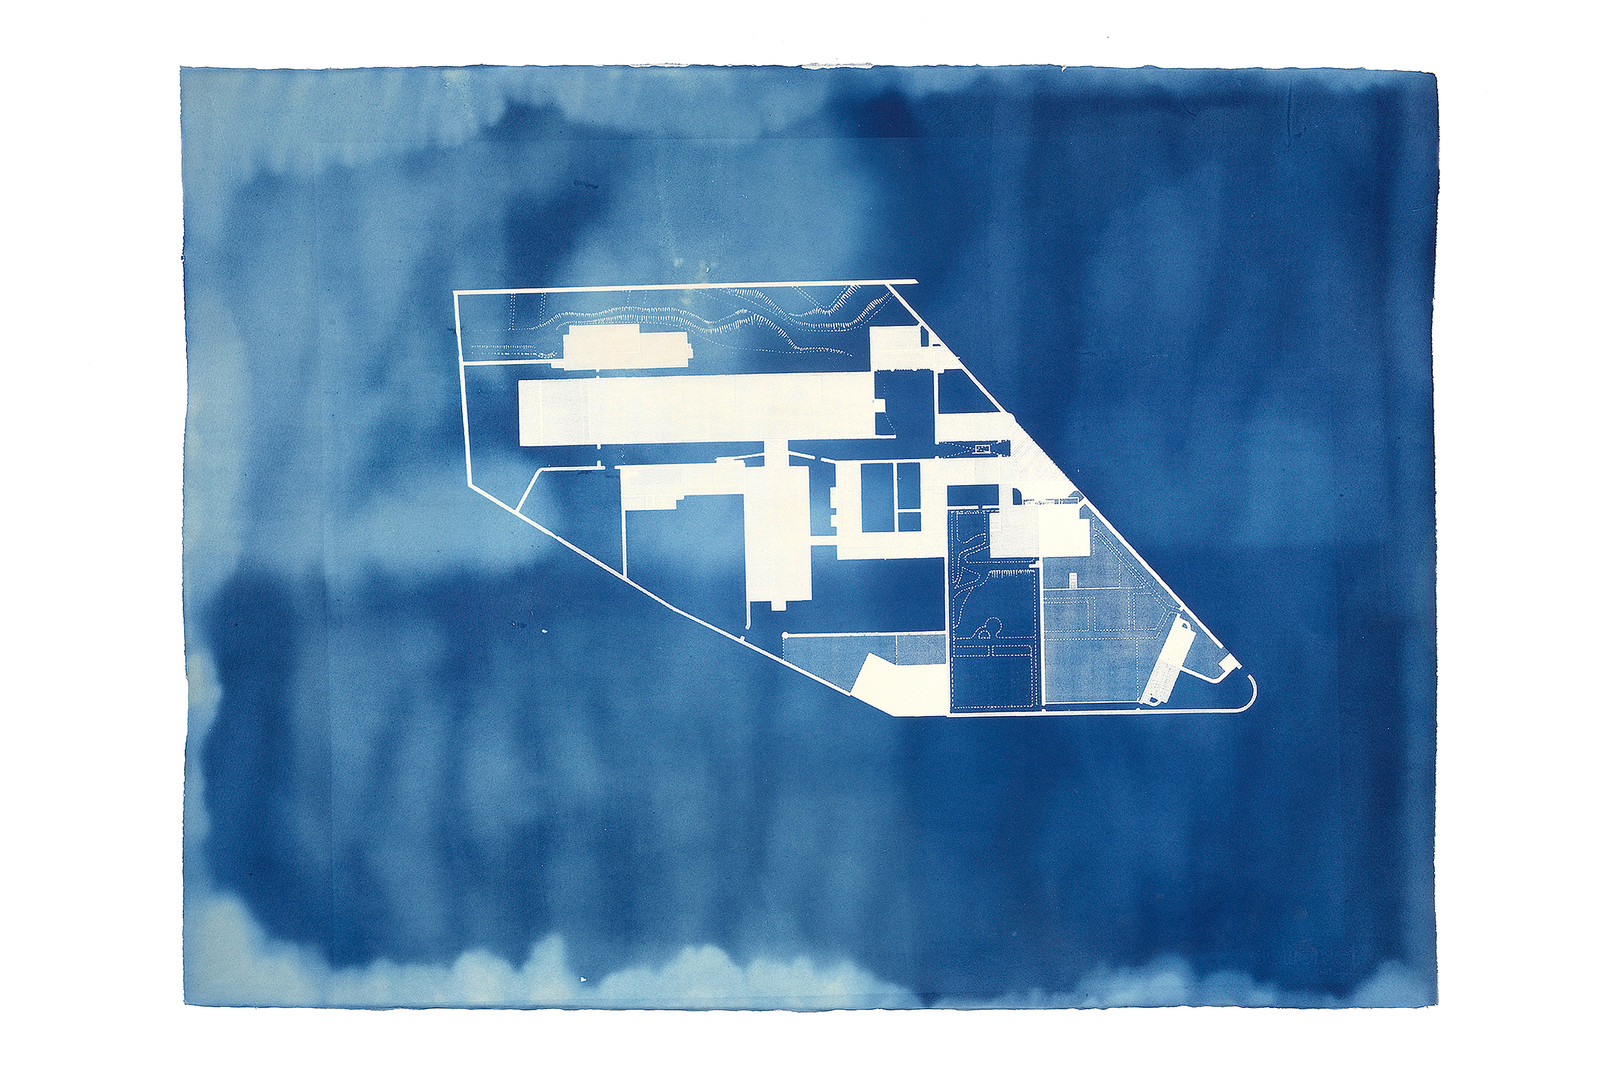 """5 0. 4 7 4 9°  N,  4. 7 2 8 6°  W  [E D I T I O N  2]  2 0 1 4 C Y A N O T Y P E  2 3  x  3 3 """"  A series of cyanotypes of Bodmin Jail made in conjunction with the project '12 Hour Cell'. This collaboration with Lucy Crump shows floor plans of the prison before and after it's extension to accommodate more inmates."""